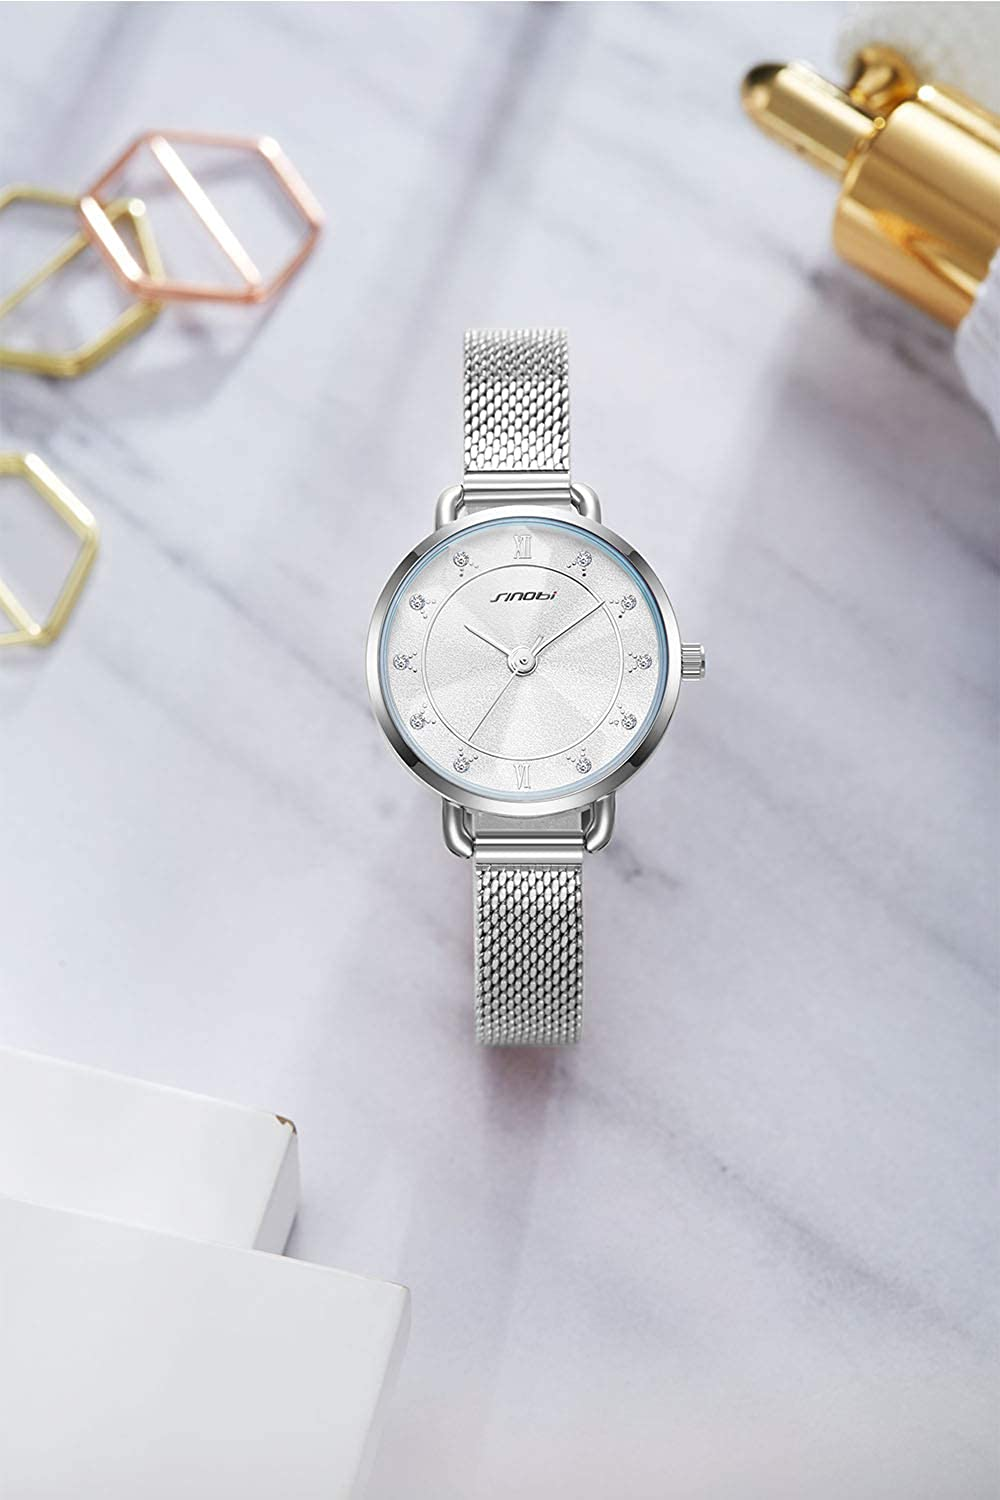 Amazon.com: SINOBI Creative Design Simplicity Women Watch Elegant Diamond Mesh Band Women Watches Ladies Wristwatch (S9796L-Silver): Watches